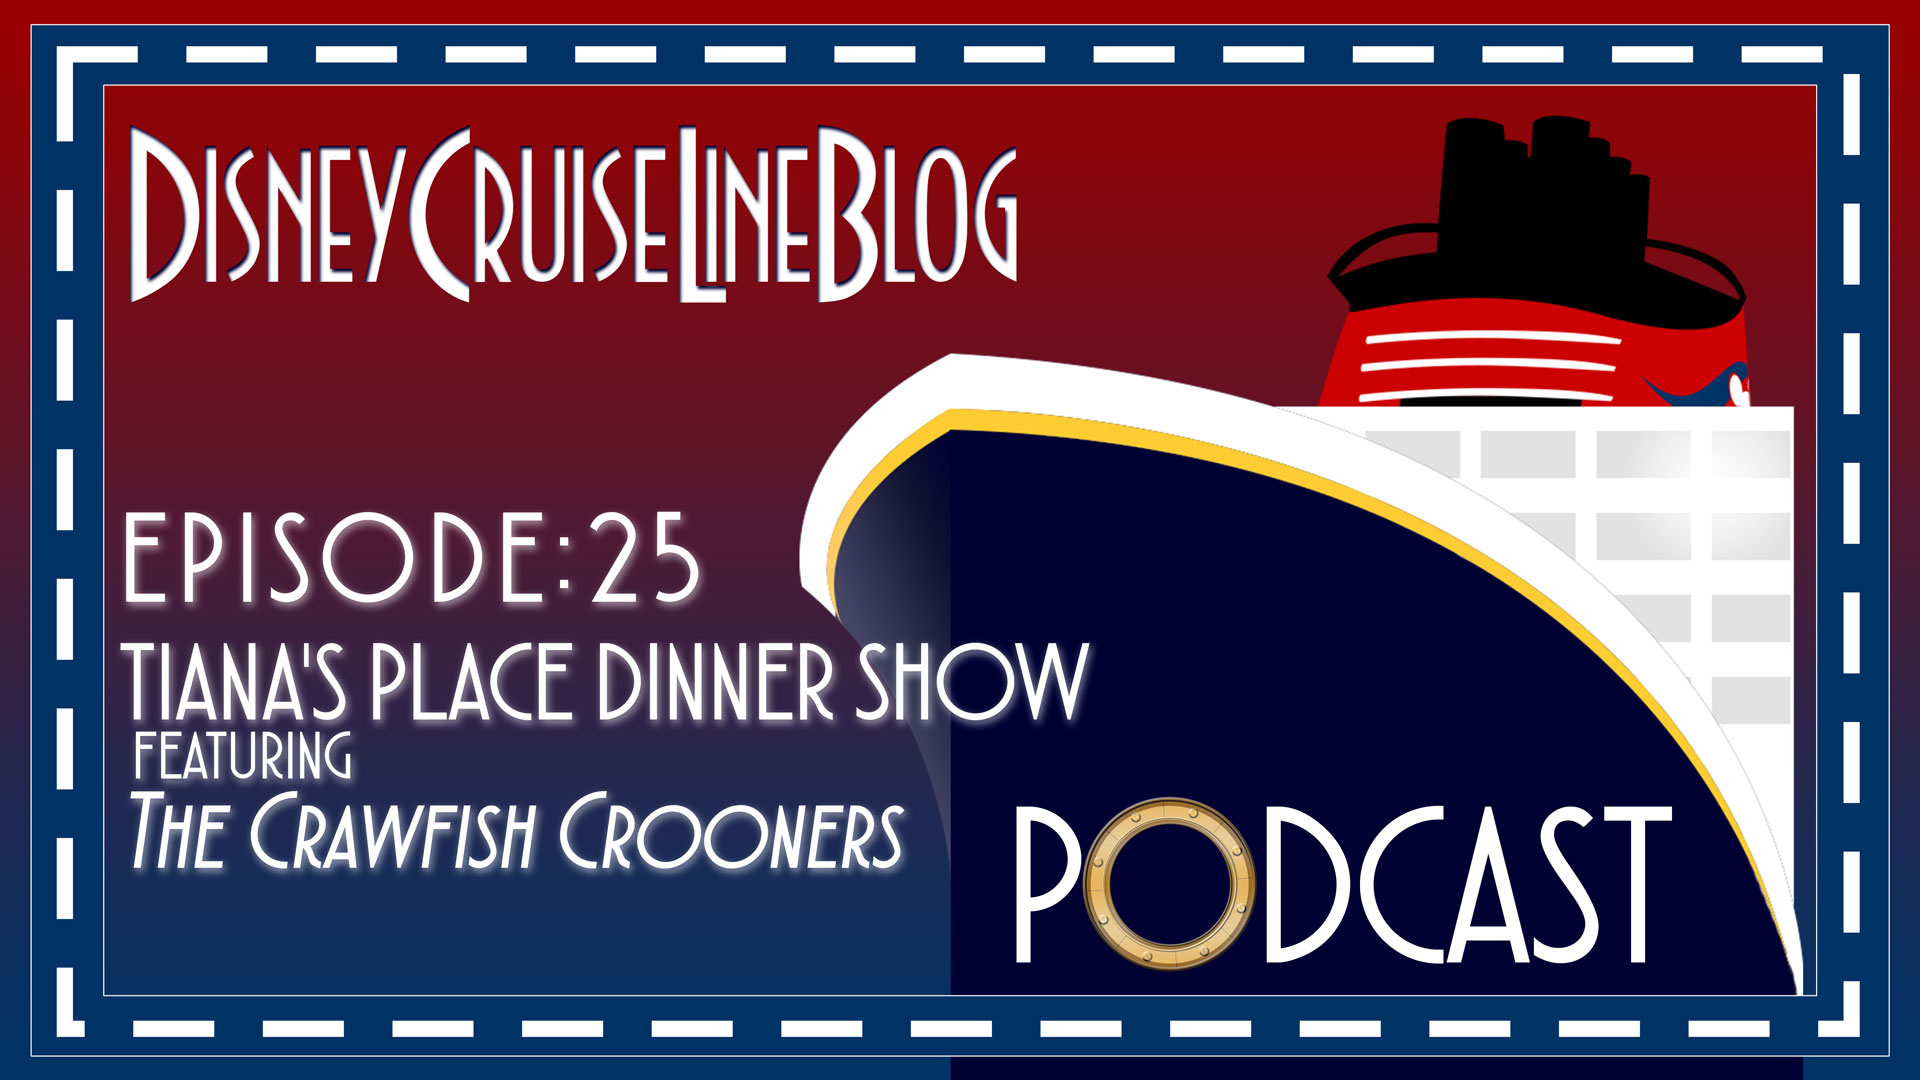 DCL Blog Podcast Episode 25 Tianas Place Crawfish Crooners